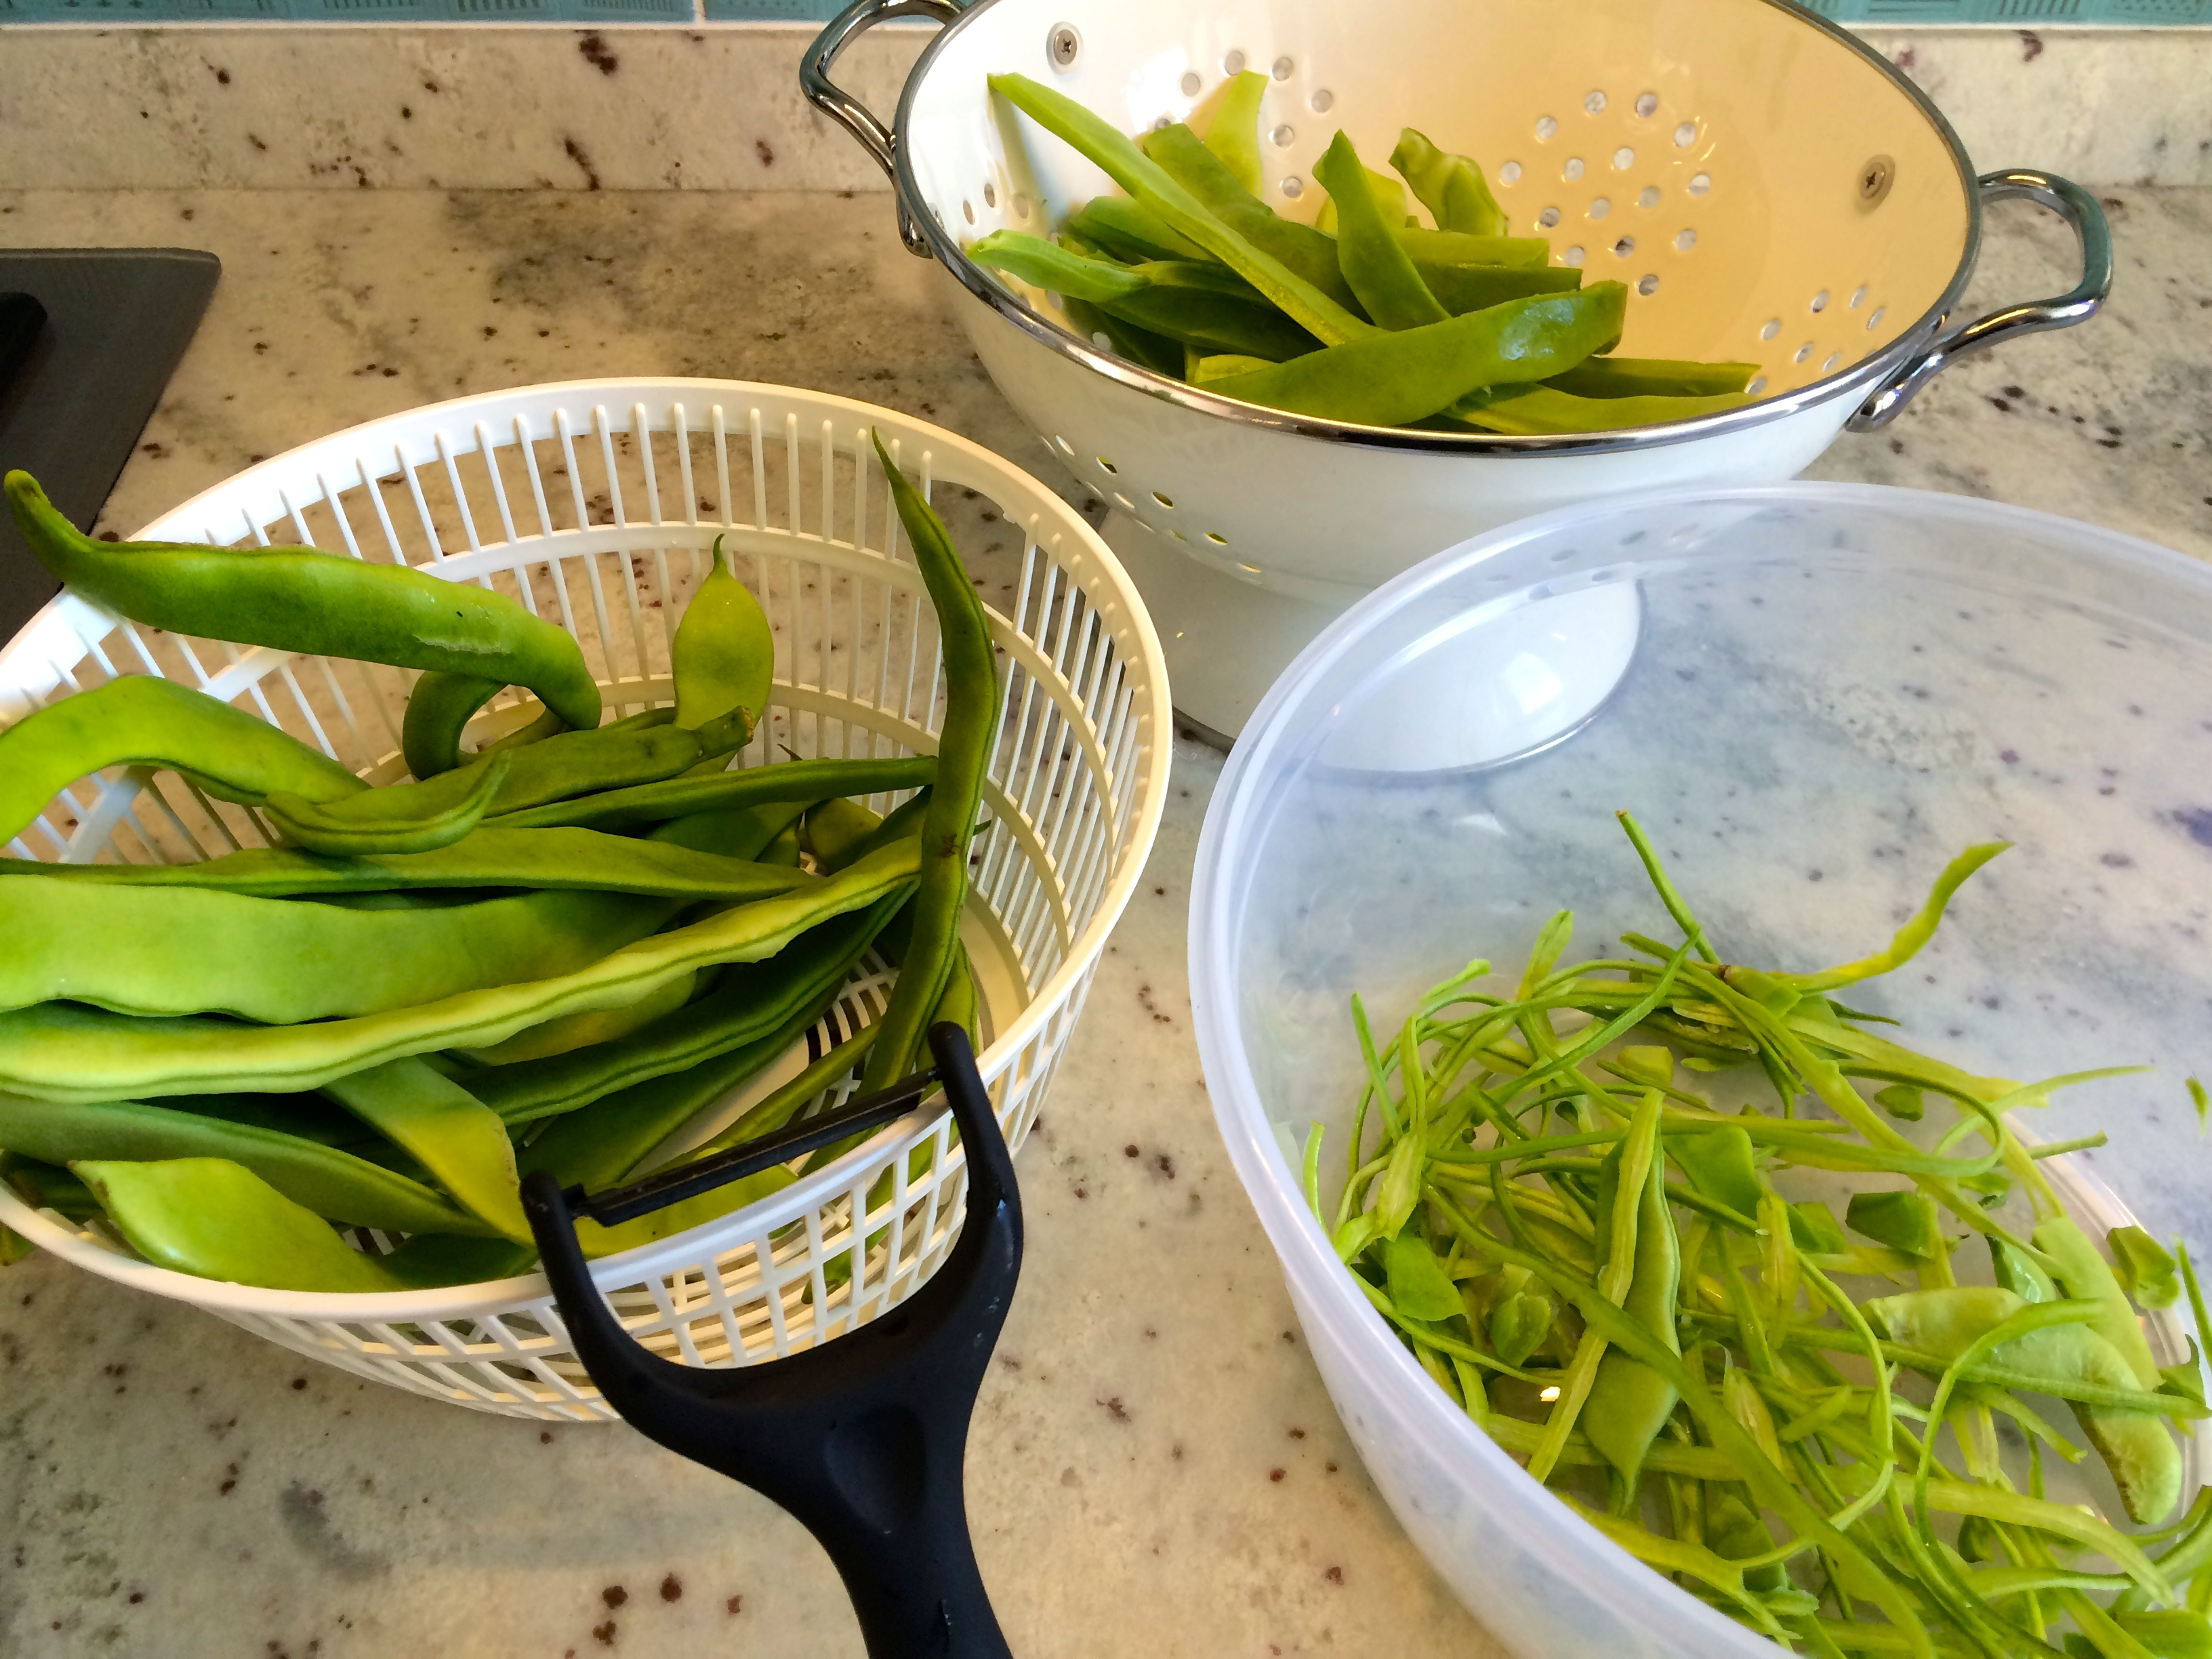 Green bean peeling station